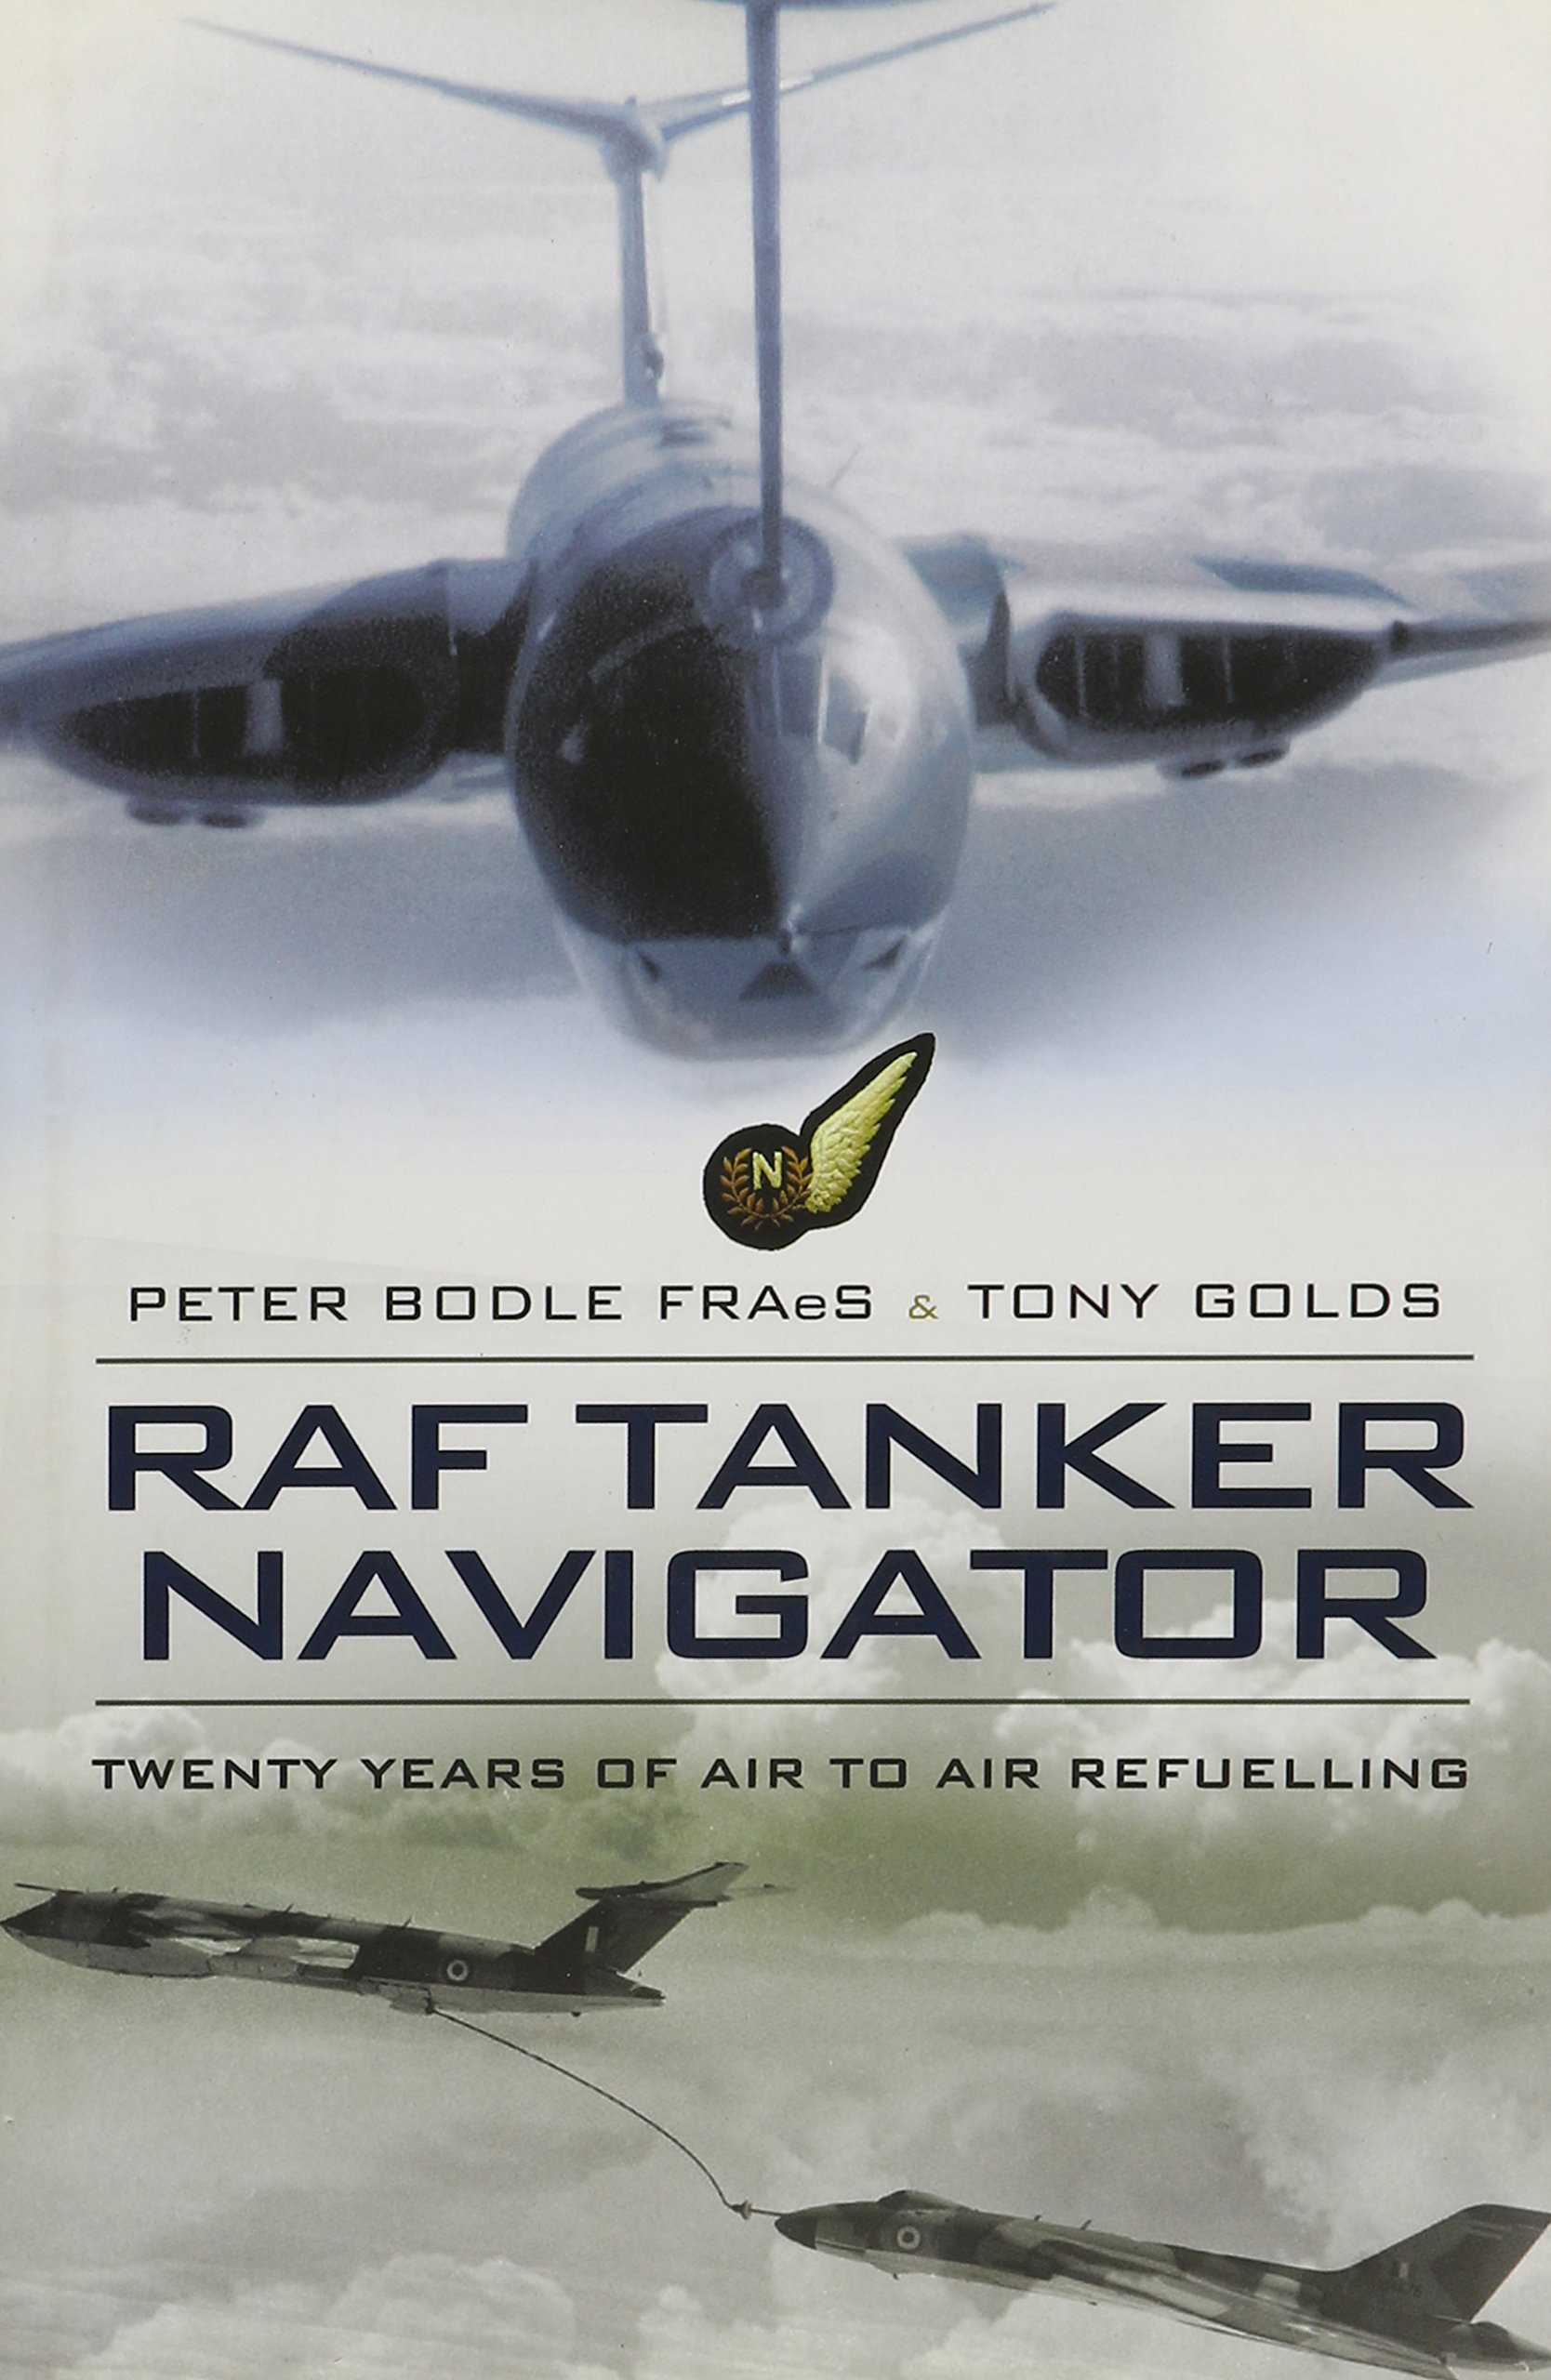 RAF Tanker Navigator: Twenty Years of Air to Air Refuelling: Amazon.es: Bodle, Peter, Golds, Tony: Libros en idiomas extranjeros